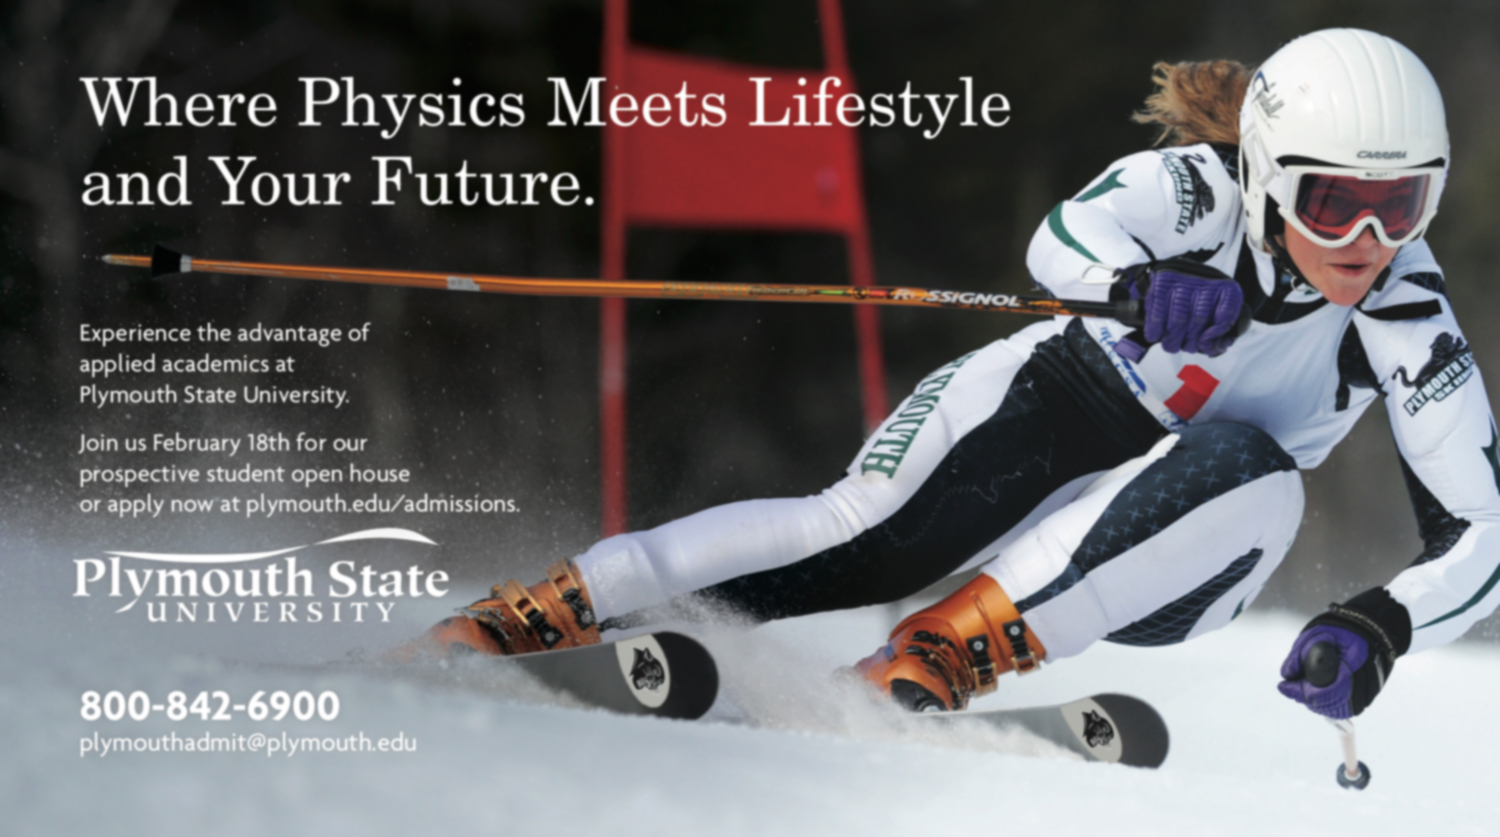 PRINT ADVERTISEMENT CREATED FOR PLYMOUTH STATE UNIVERSITY